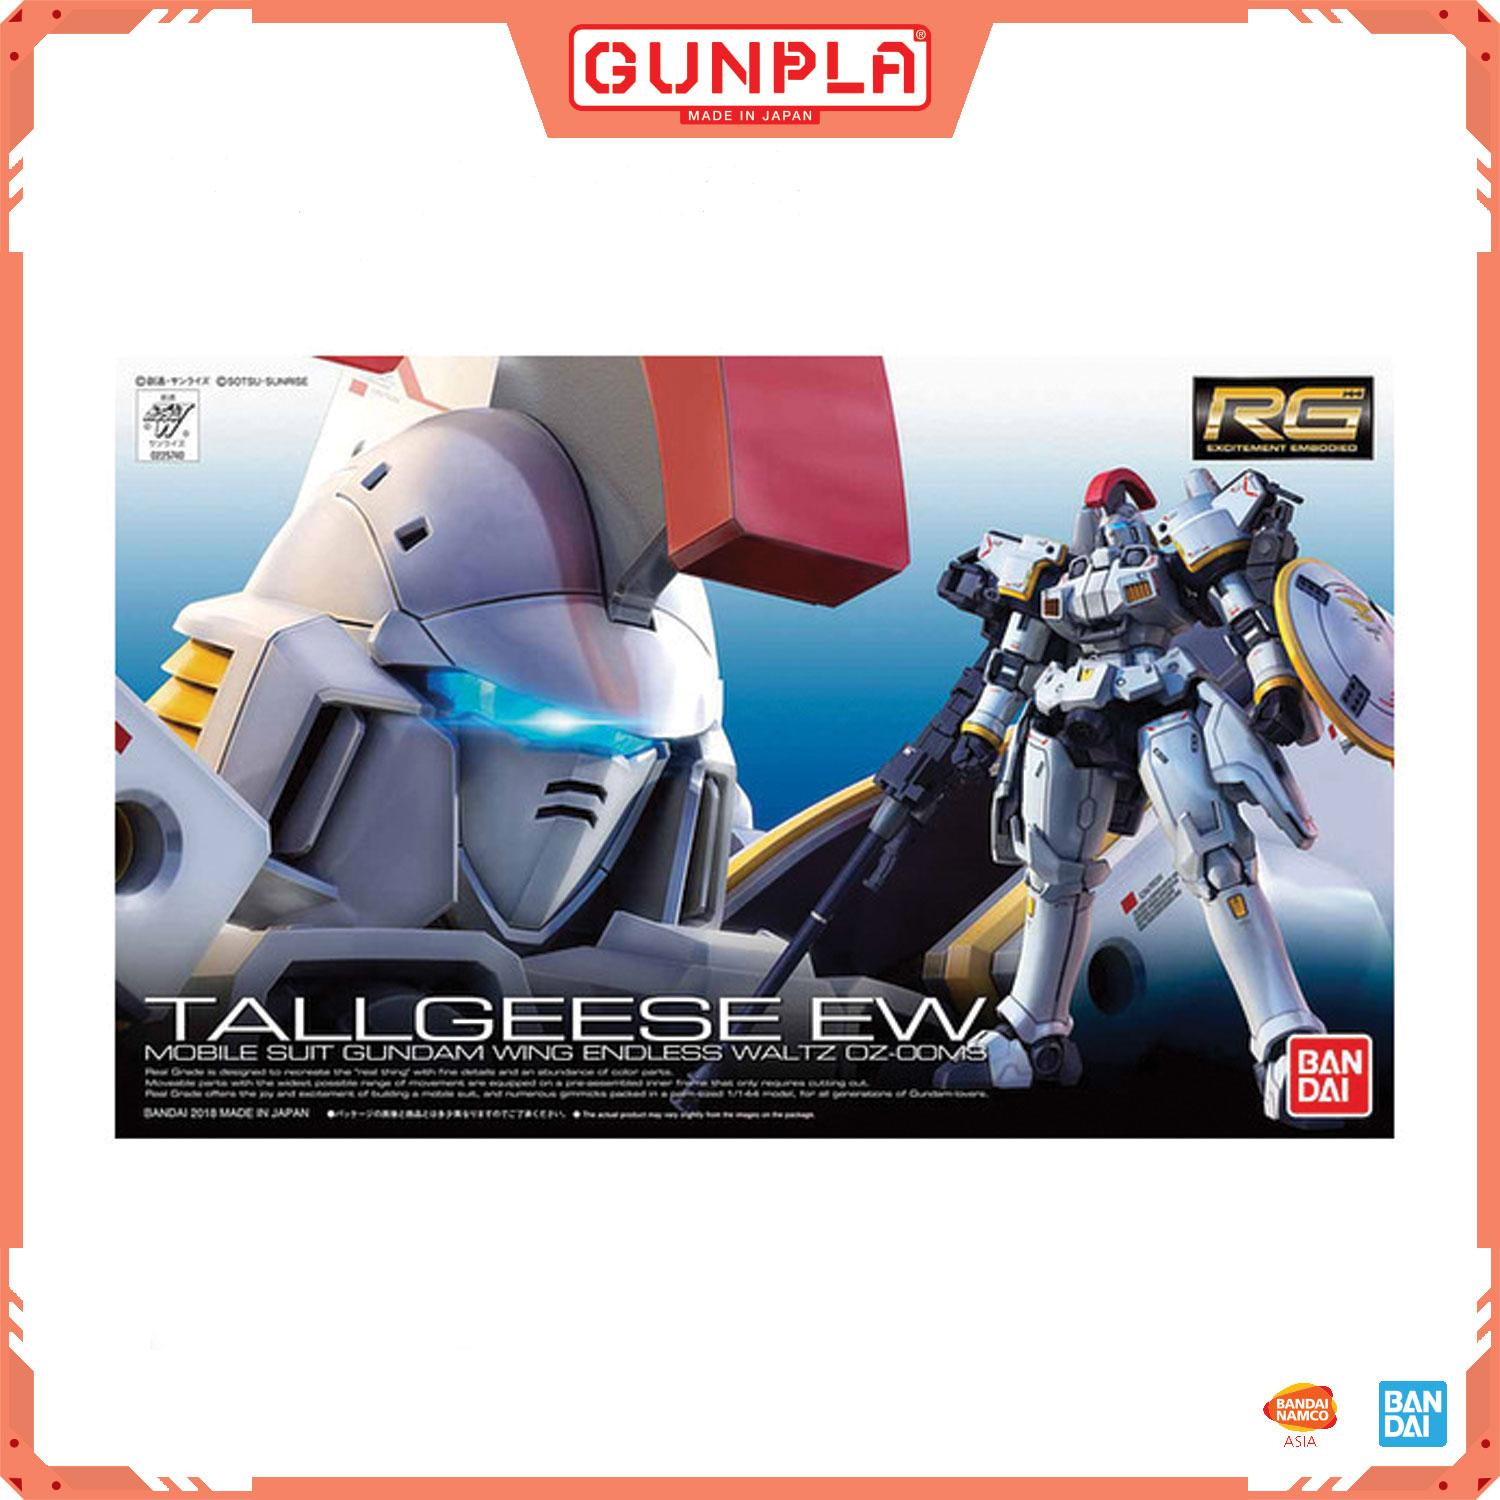 Gundam Philippines Price List Robot Toys For Sale Lazada Bandai Rg 1 144 Tallgeese Ew